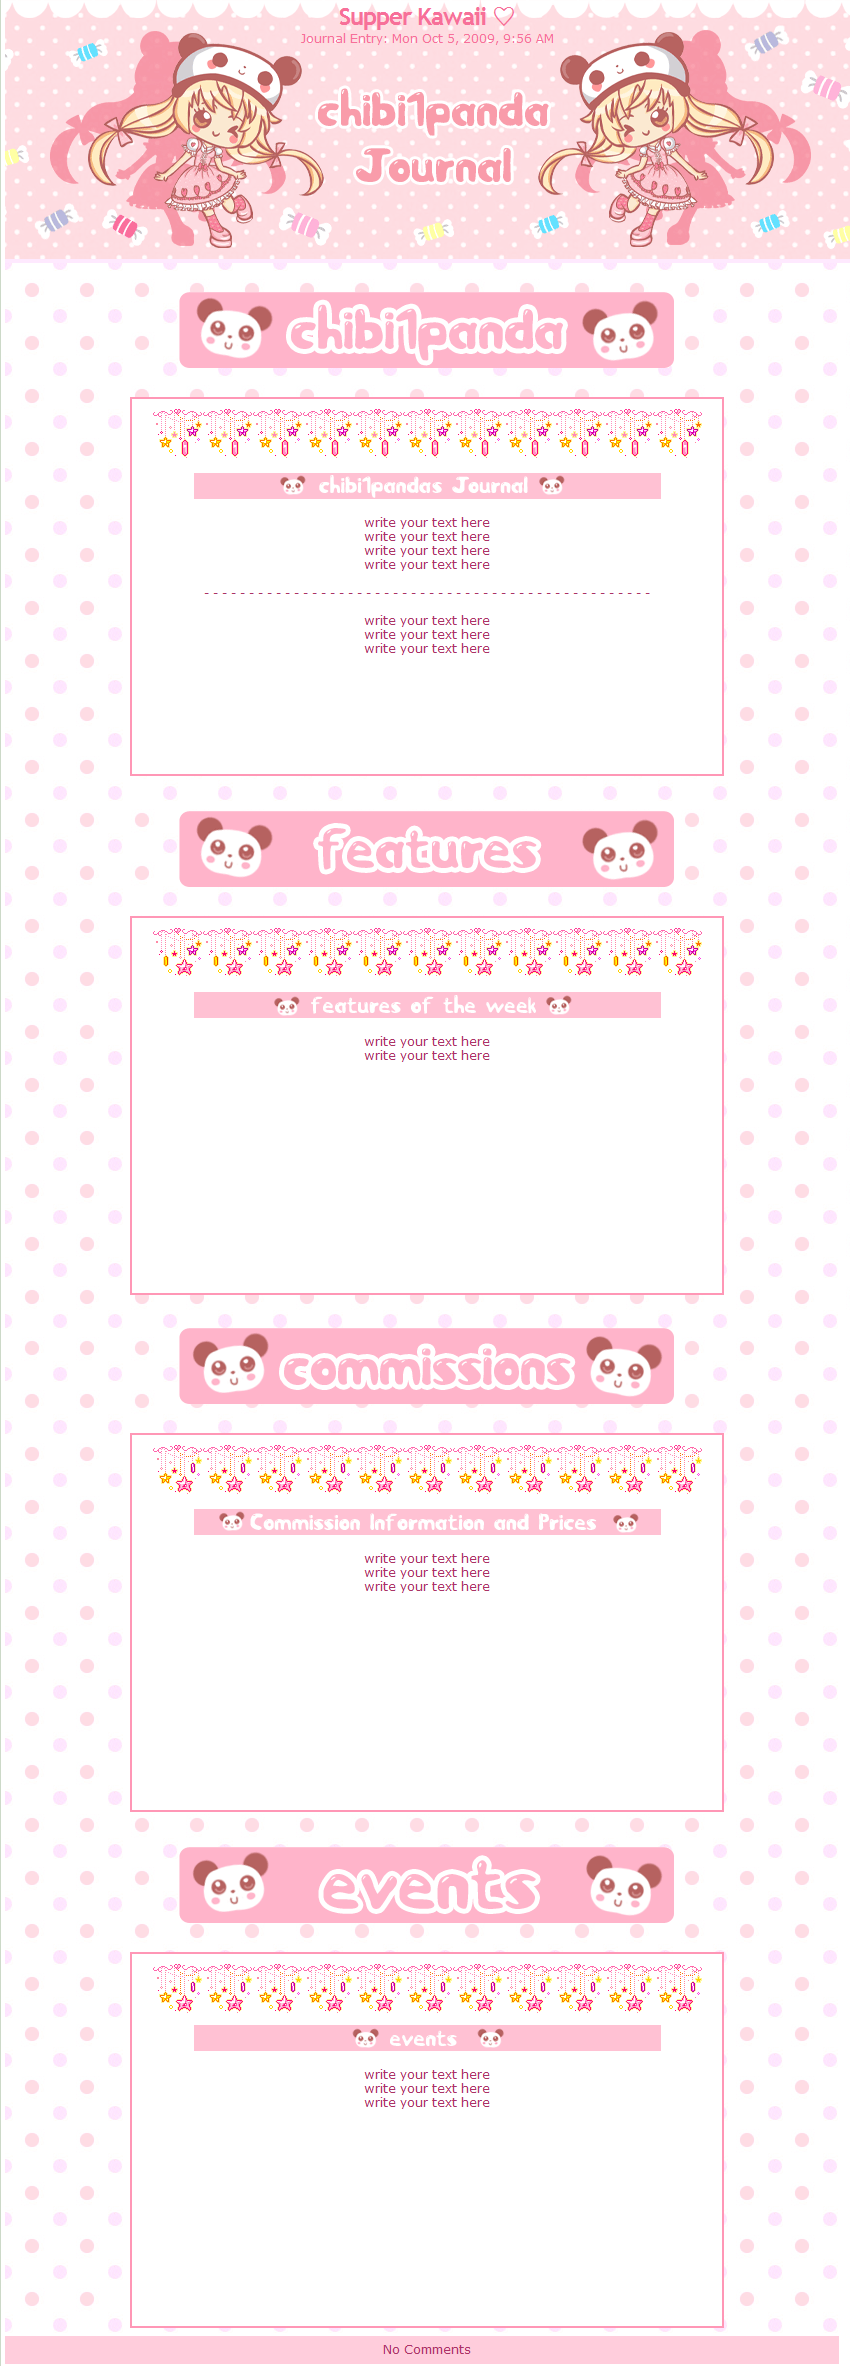 kawaii Journal for chibi1panda by miemie-chan3